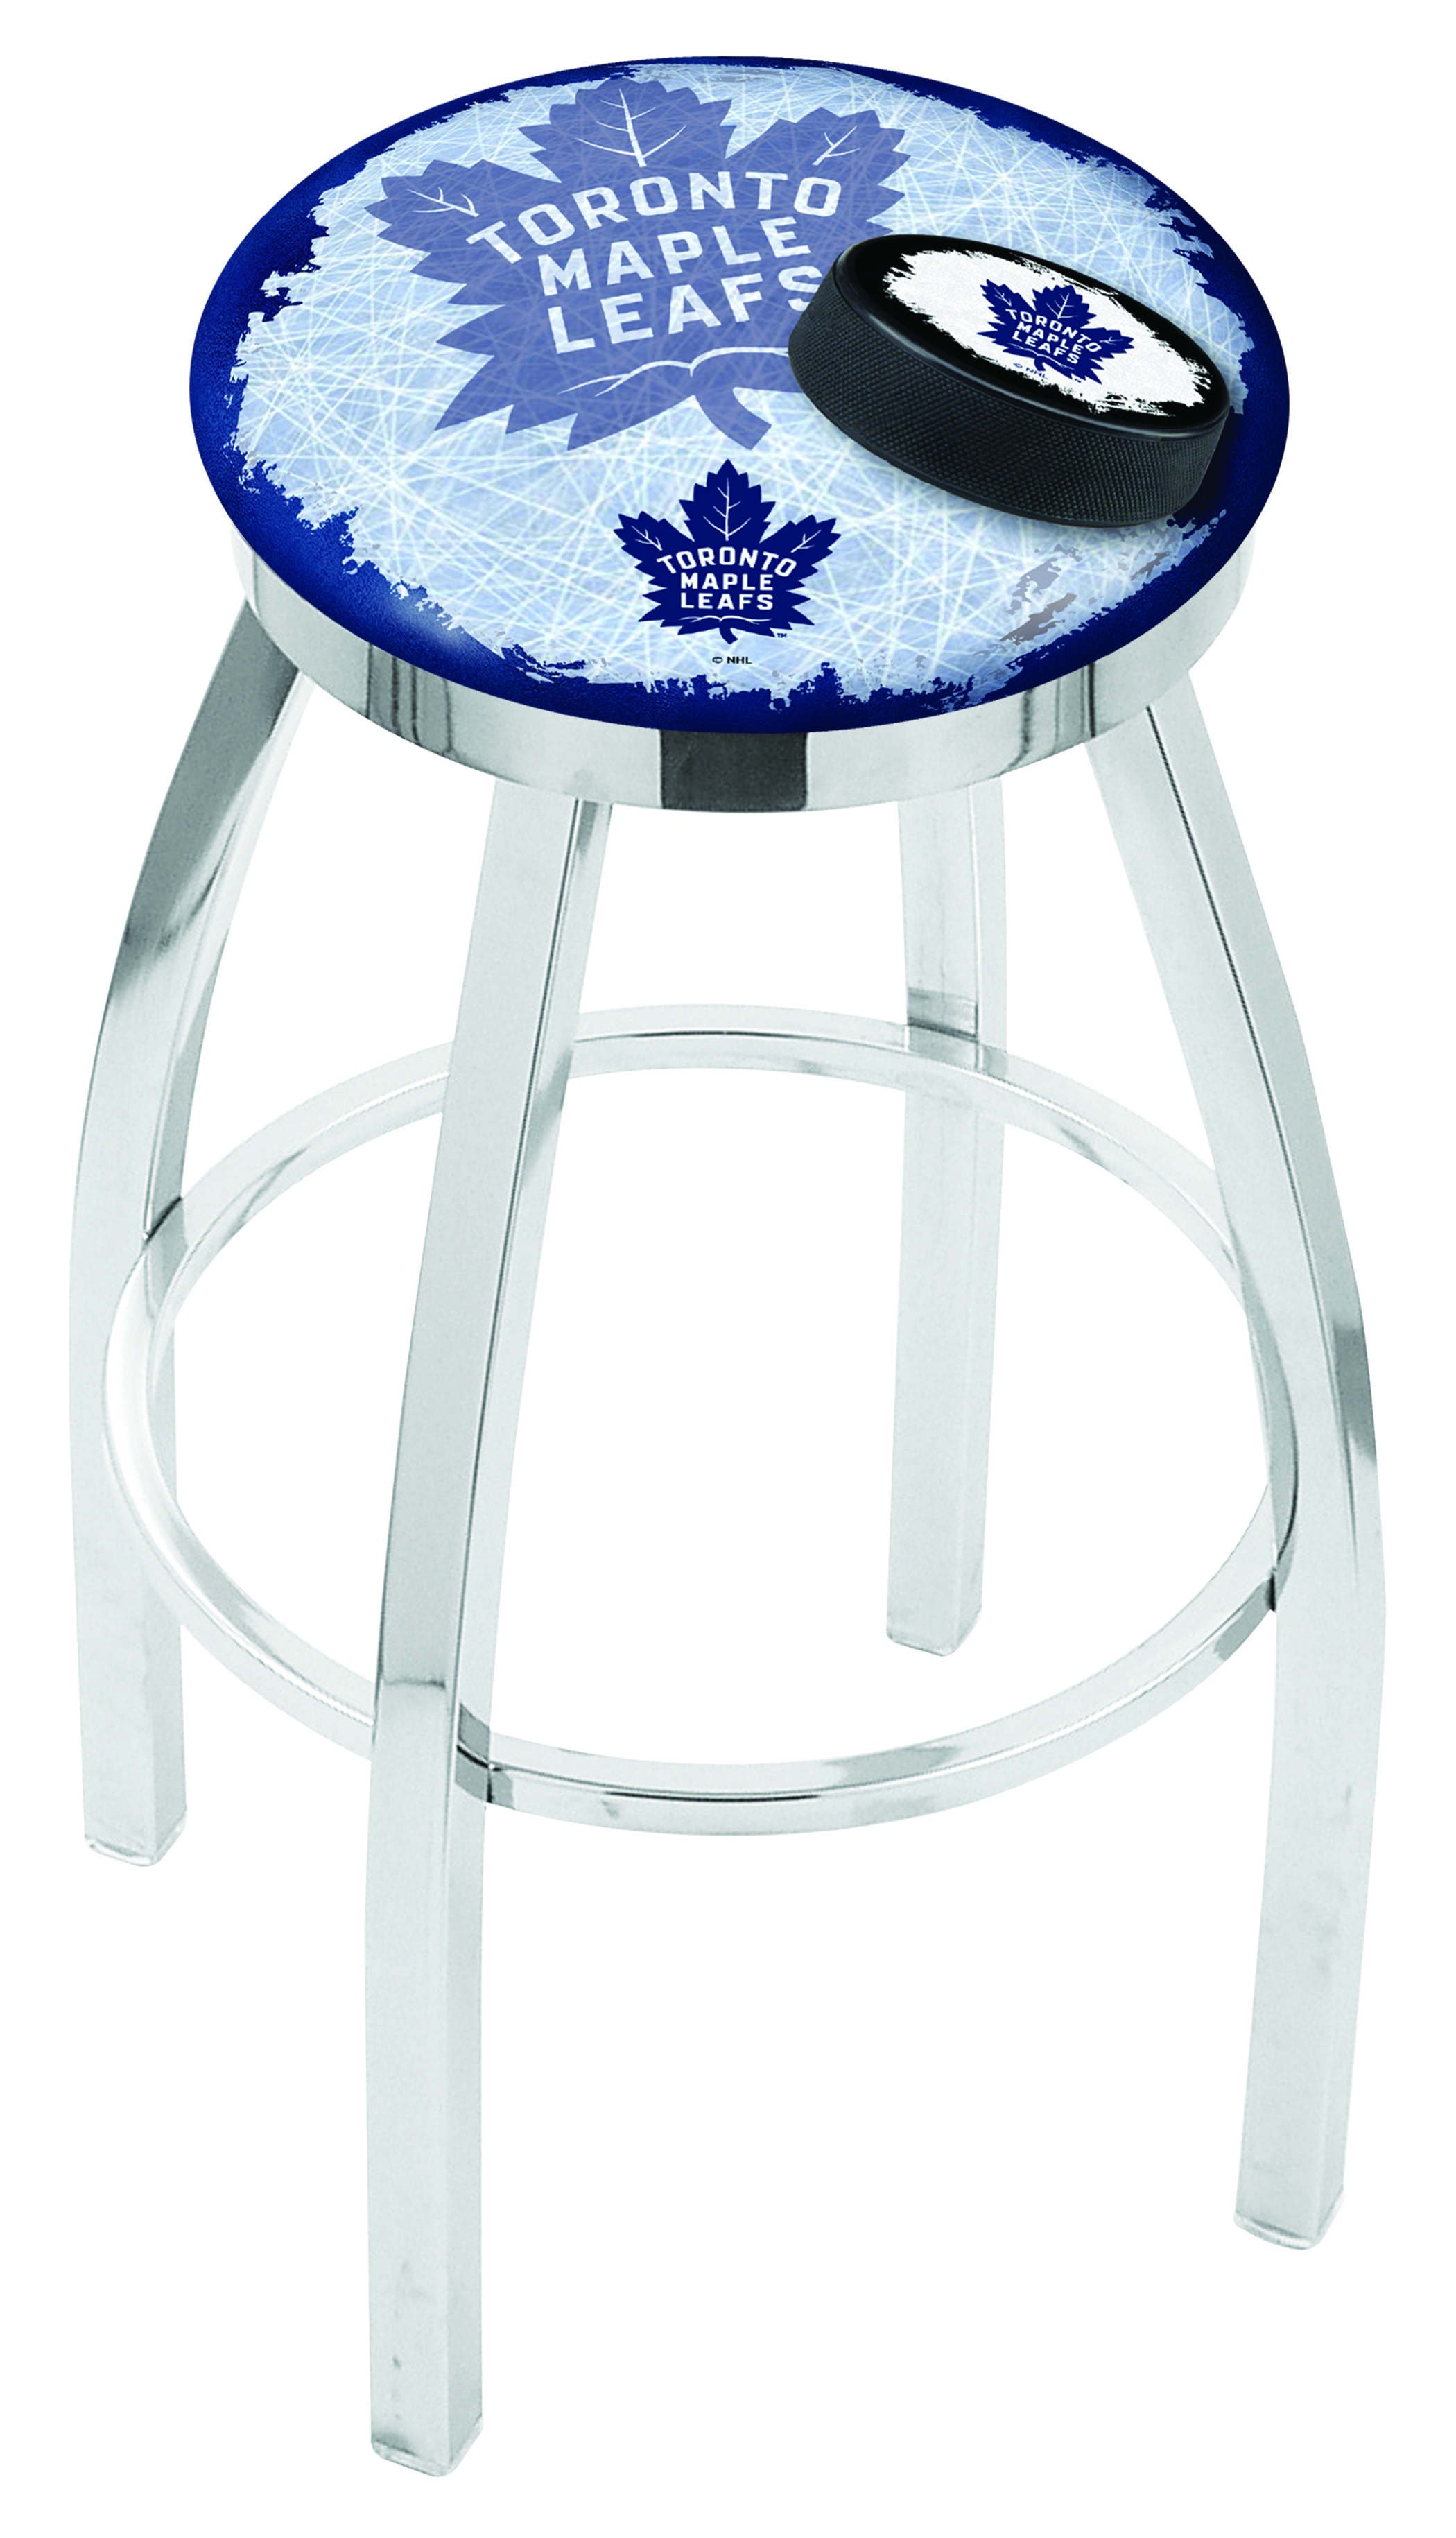 Toronto Maple Leafs Spectator Chair W Official Nhl Logo